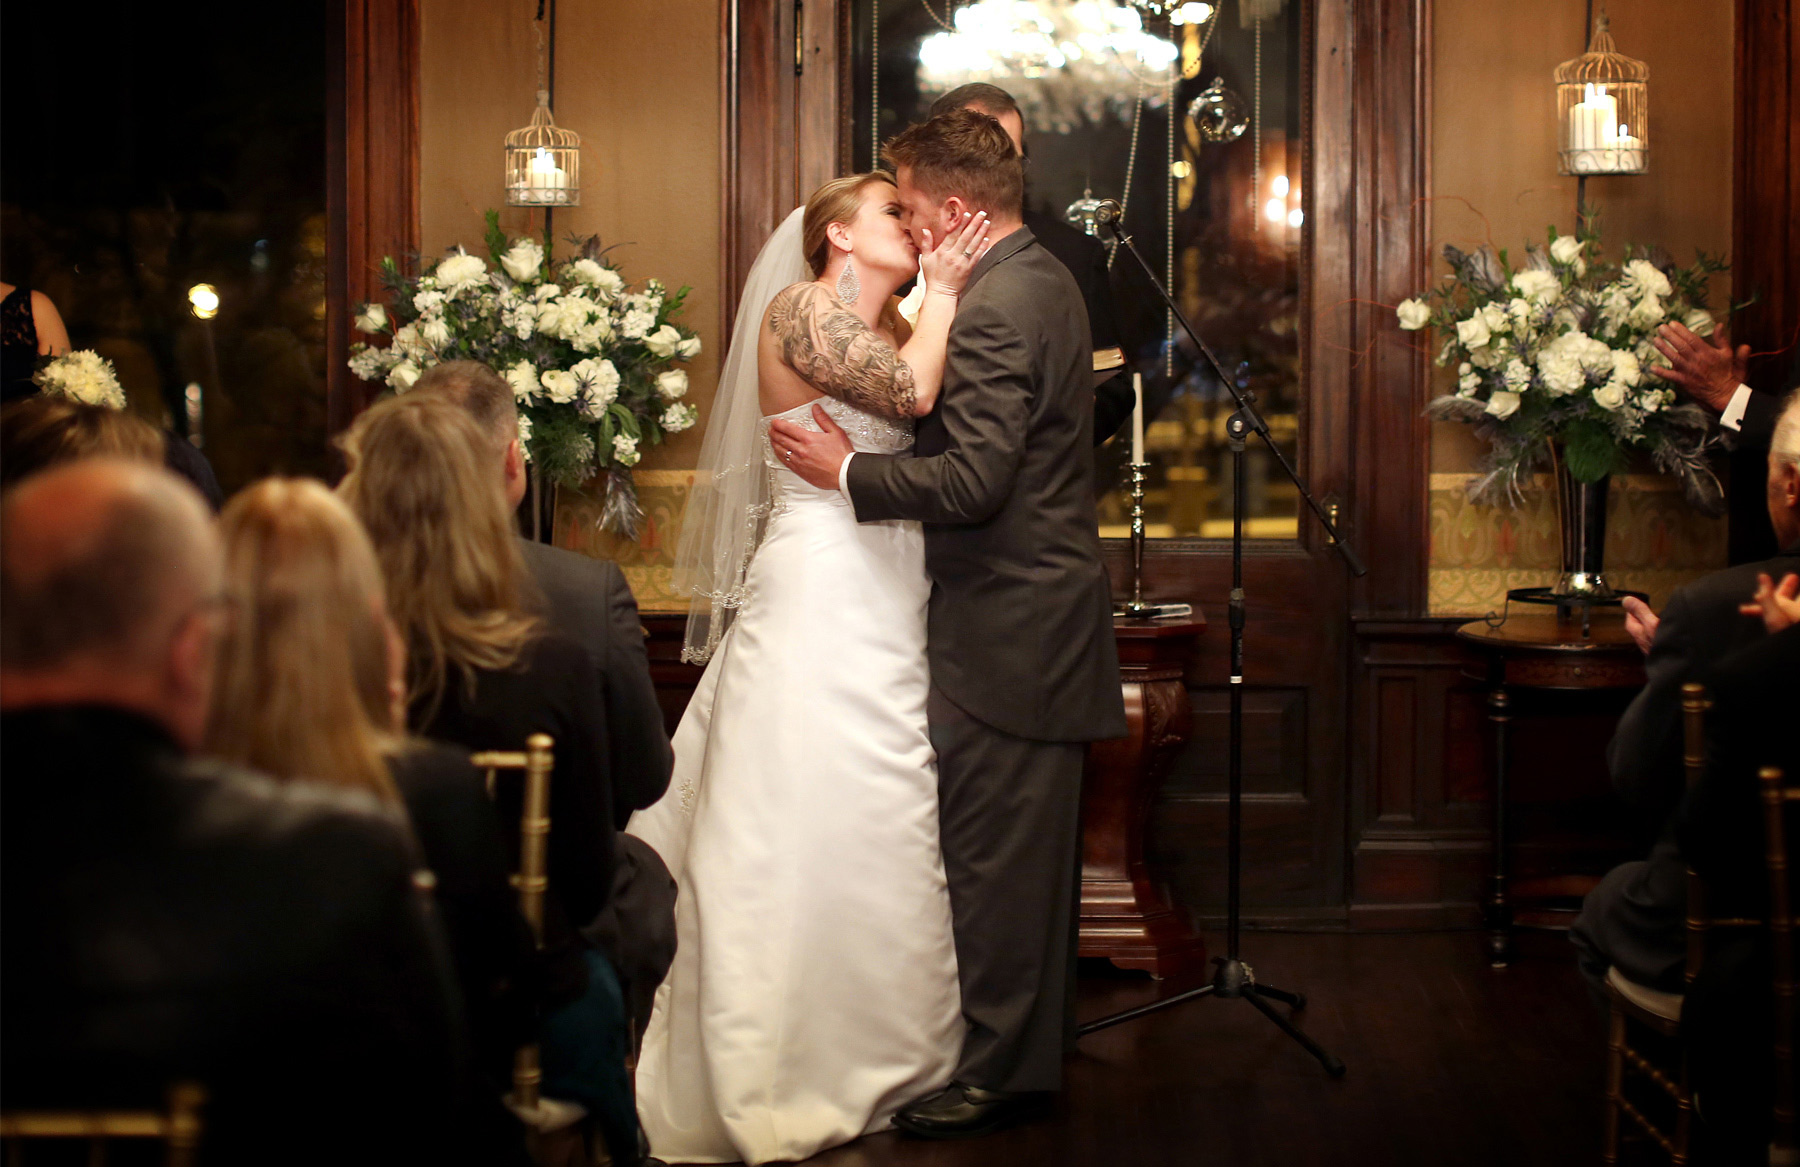 10-Minneapolis-Minnesota-Wedding-Photography-by-Vick-Photography-Semple-Mansion-Ceremony-Ariel-and-Jared.jpg